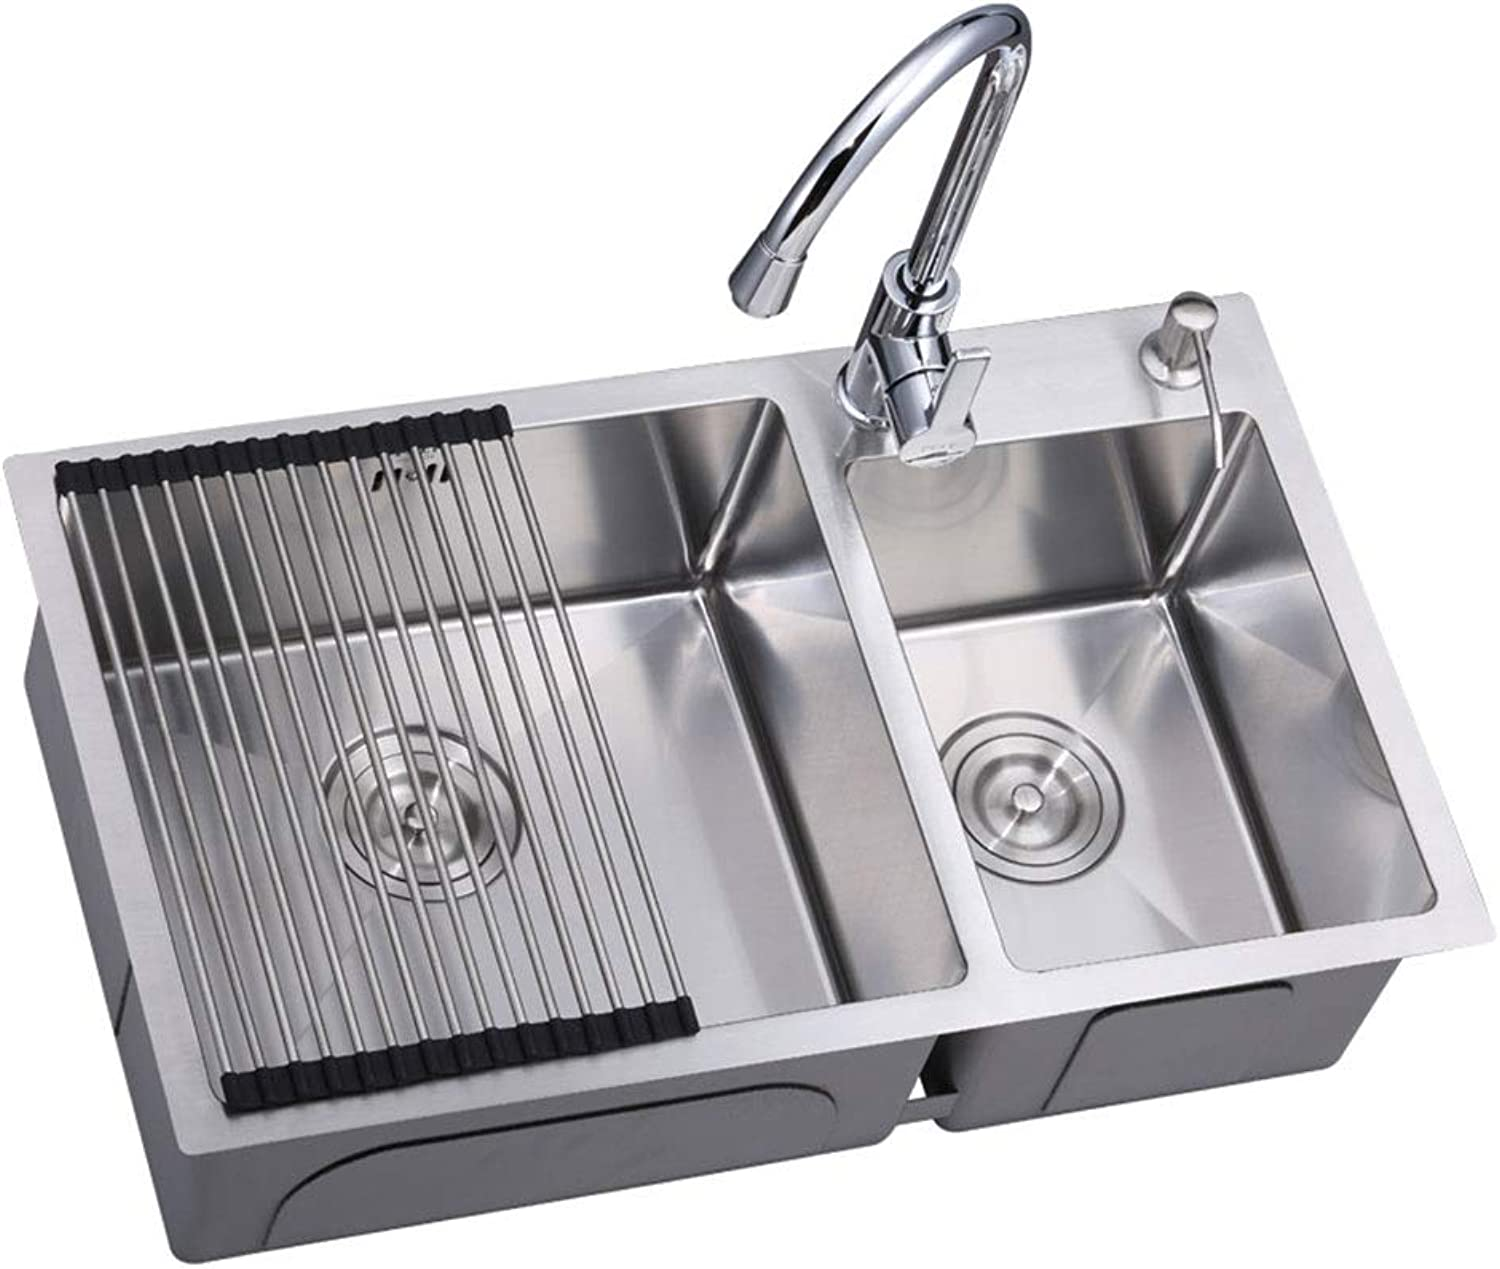 3mm Single Kitchen Sink 304 Stainless Steel Kitchen Sink Single Slot Dish Basin With Drain Basket Drain Pipe 0423 (Size   720X400cm)